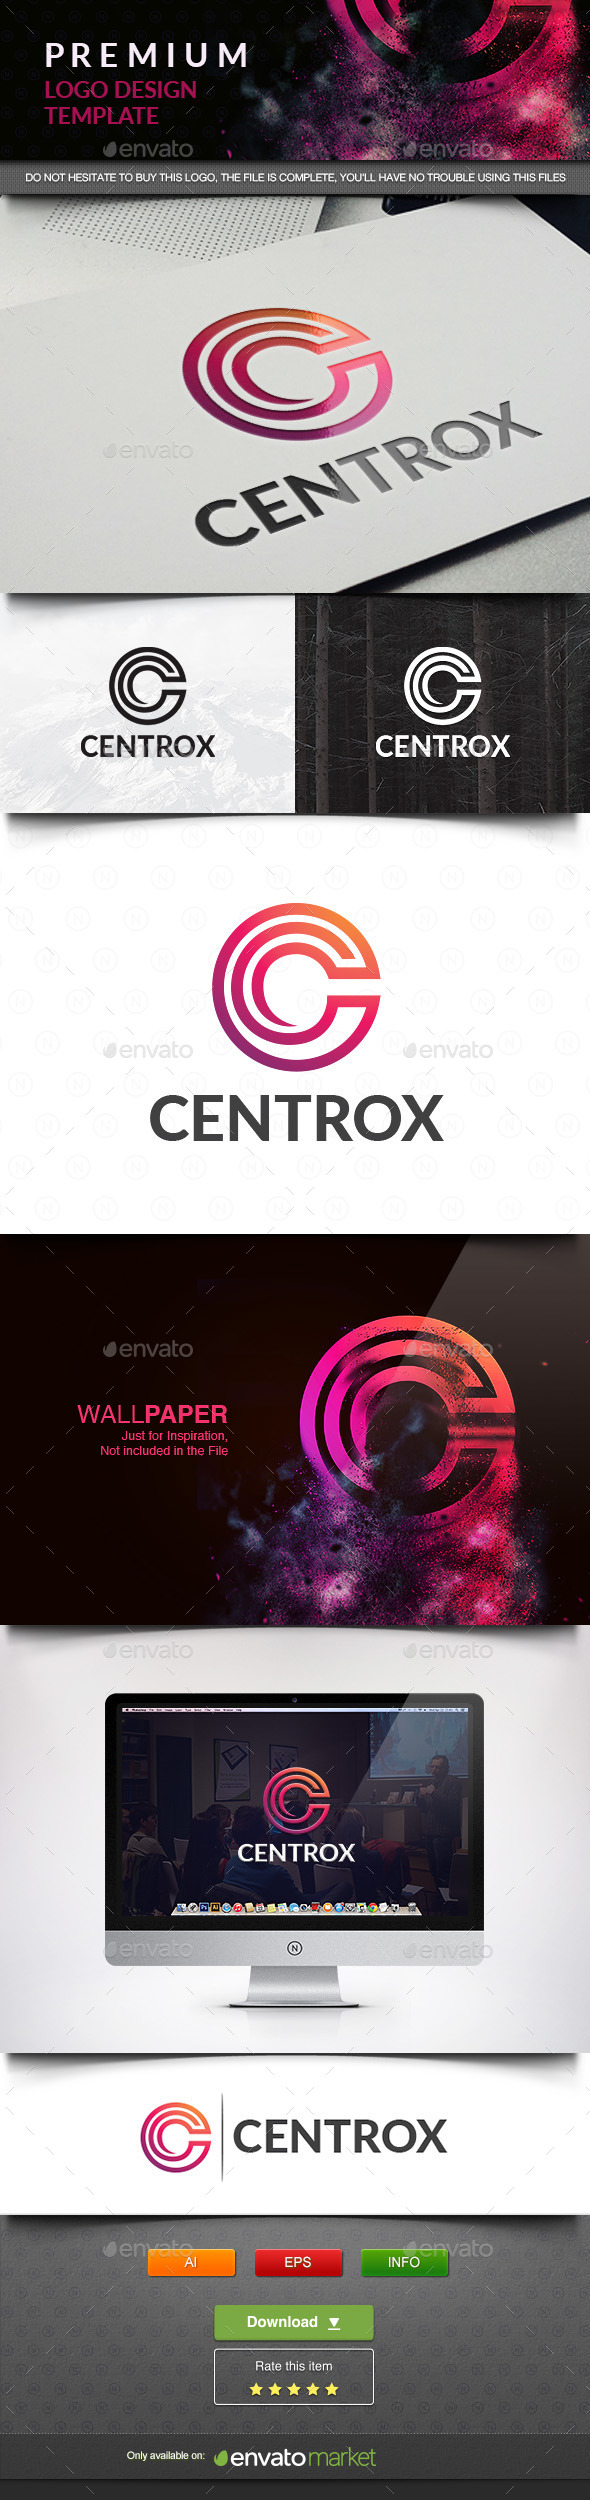 Centrox - Letters Logo Templates